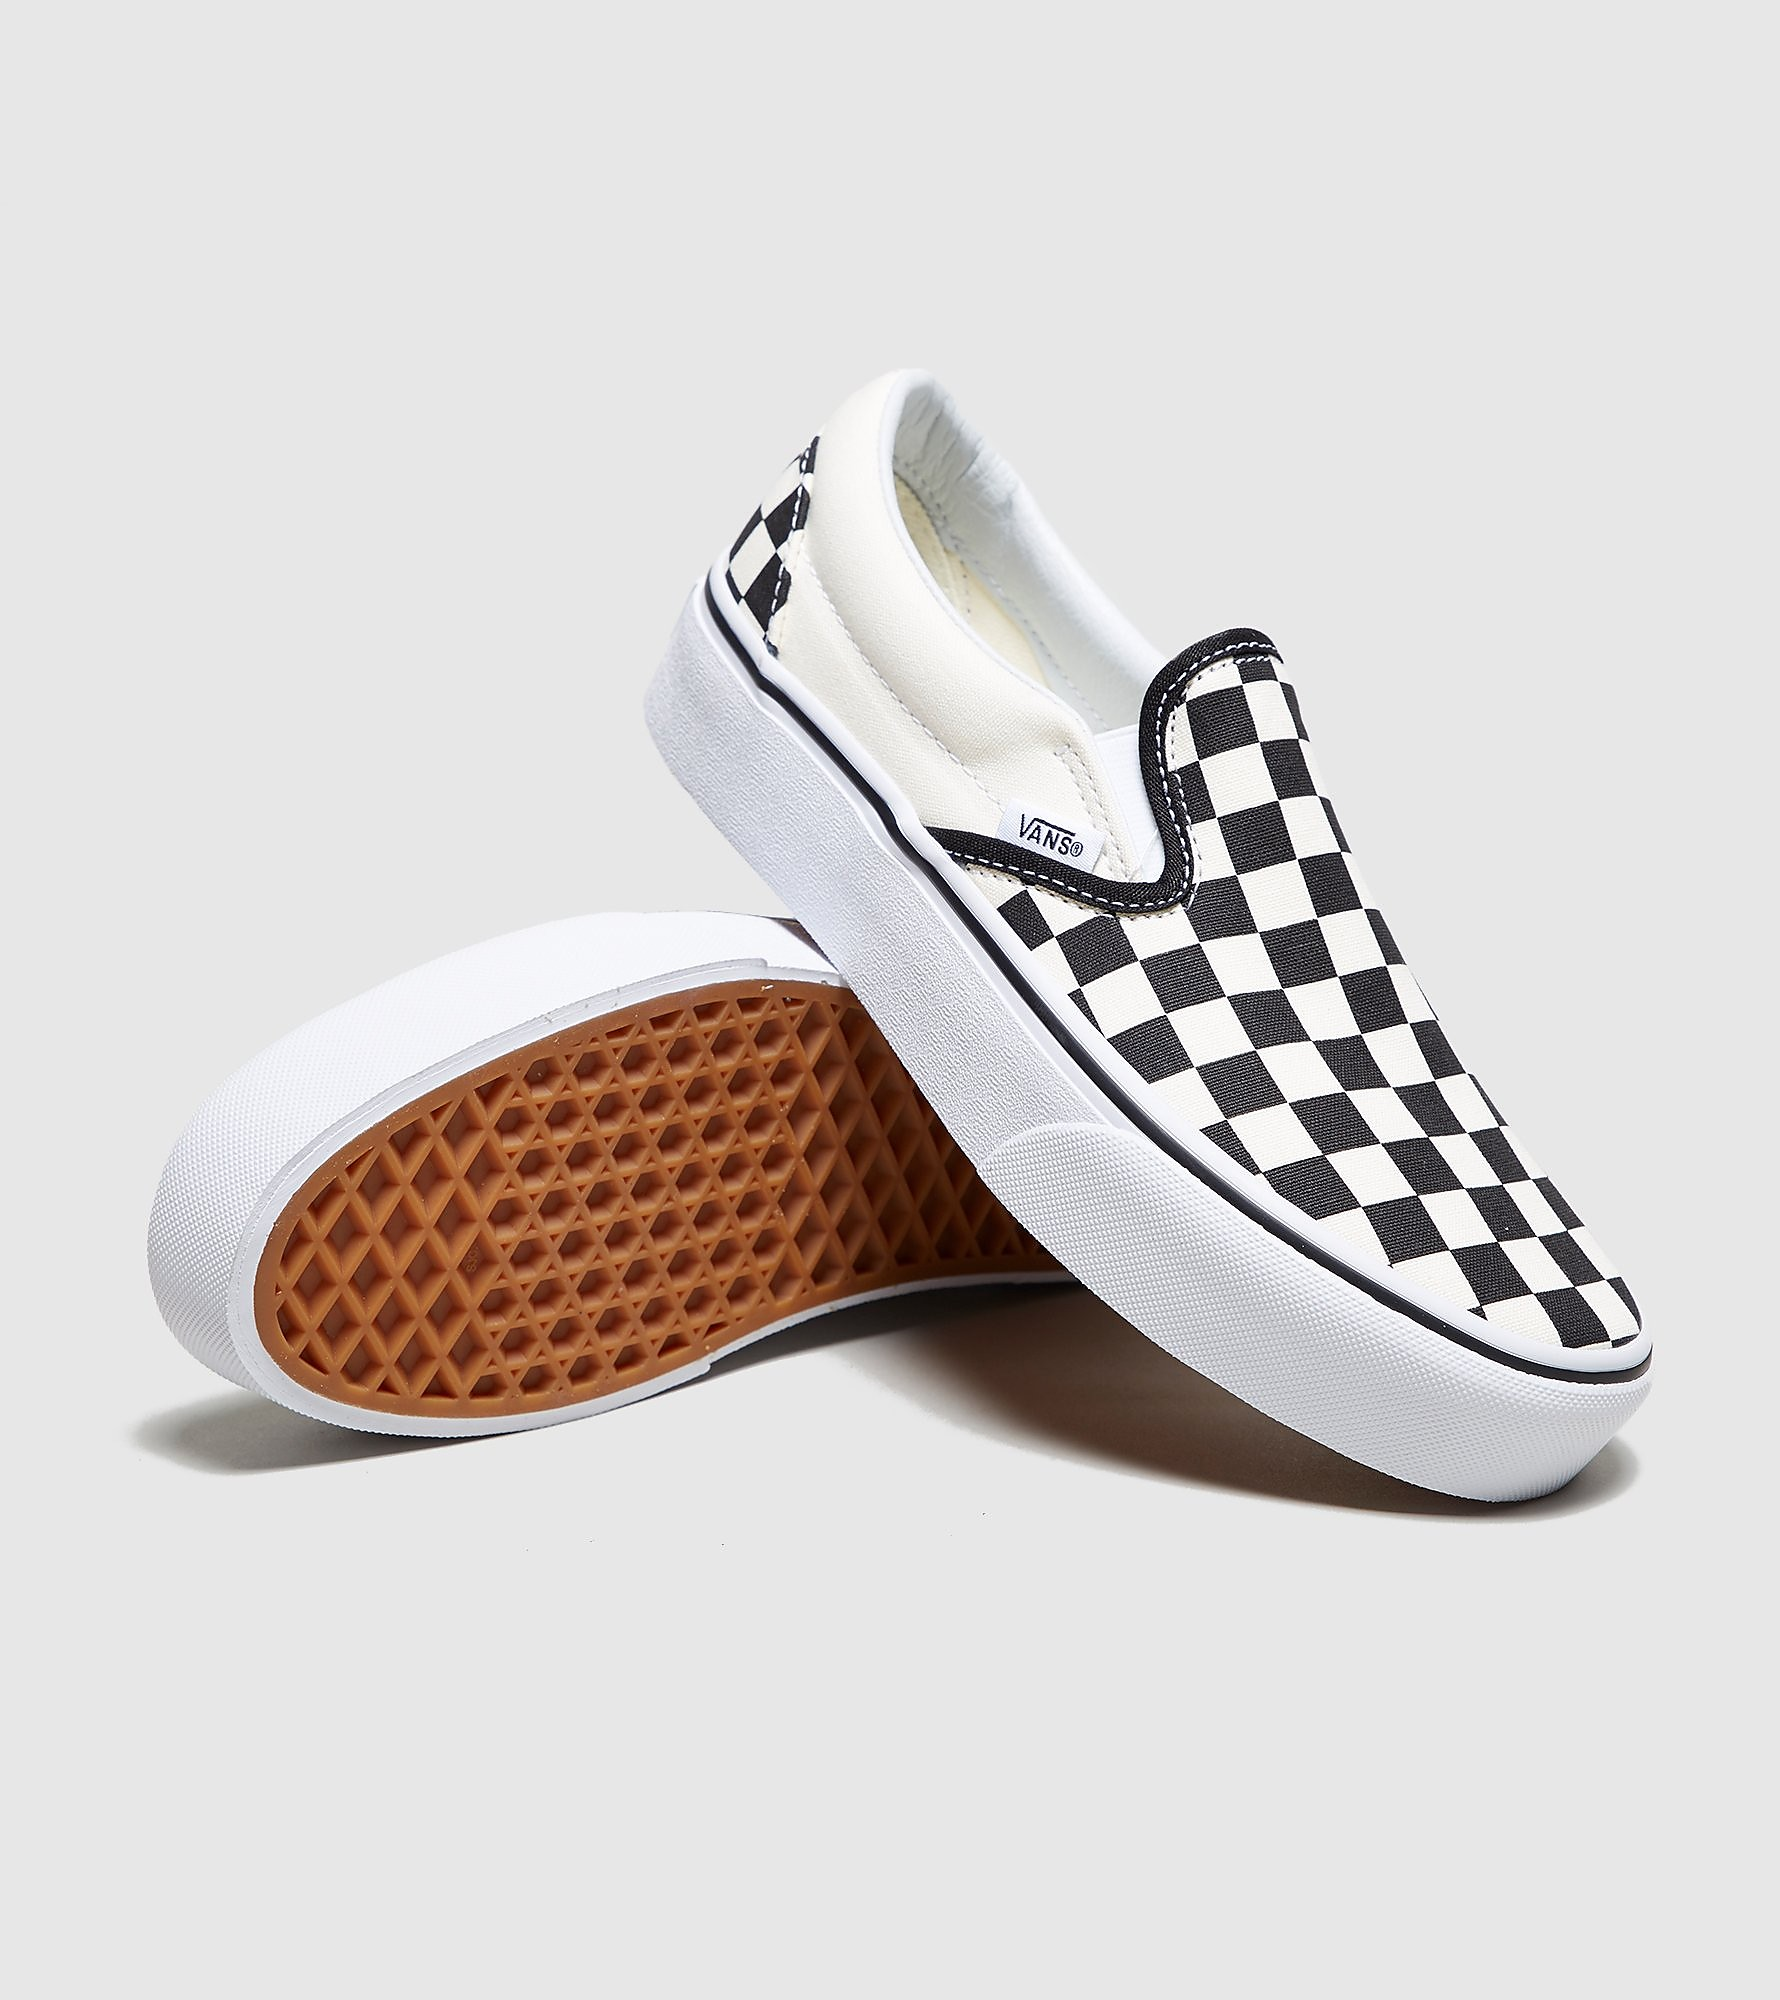 Vans Slip-On Platform Women's